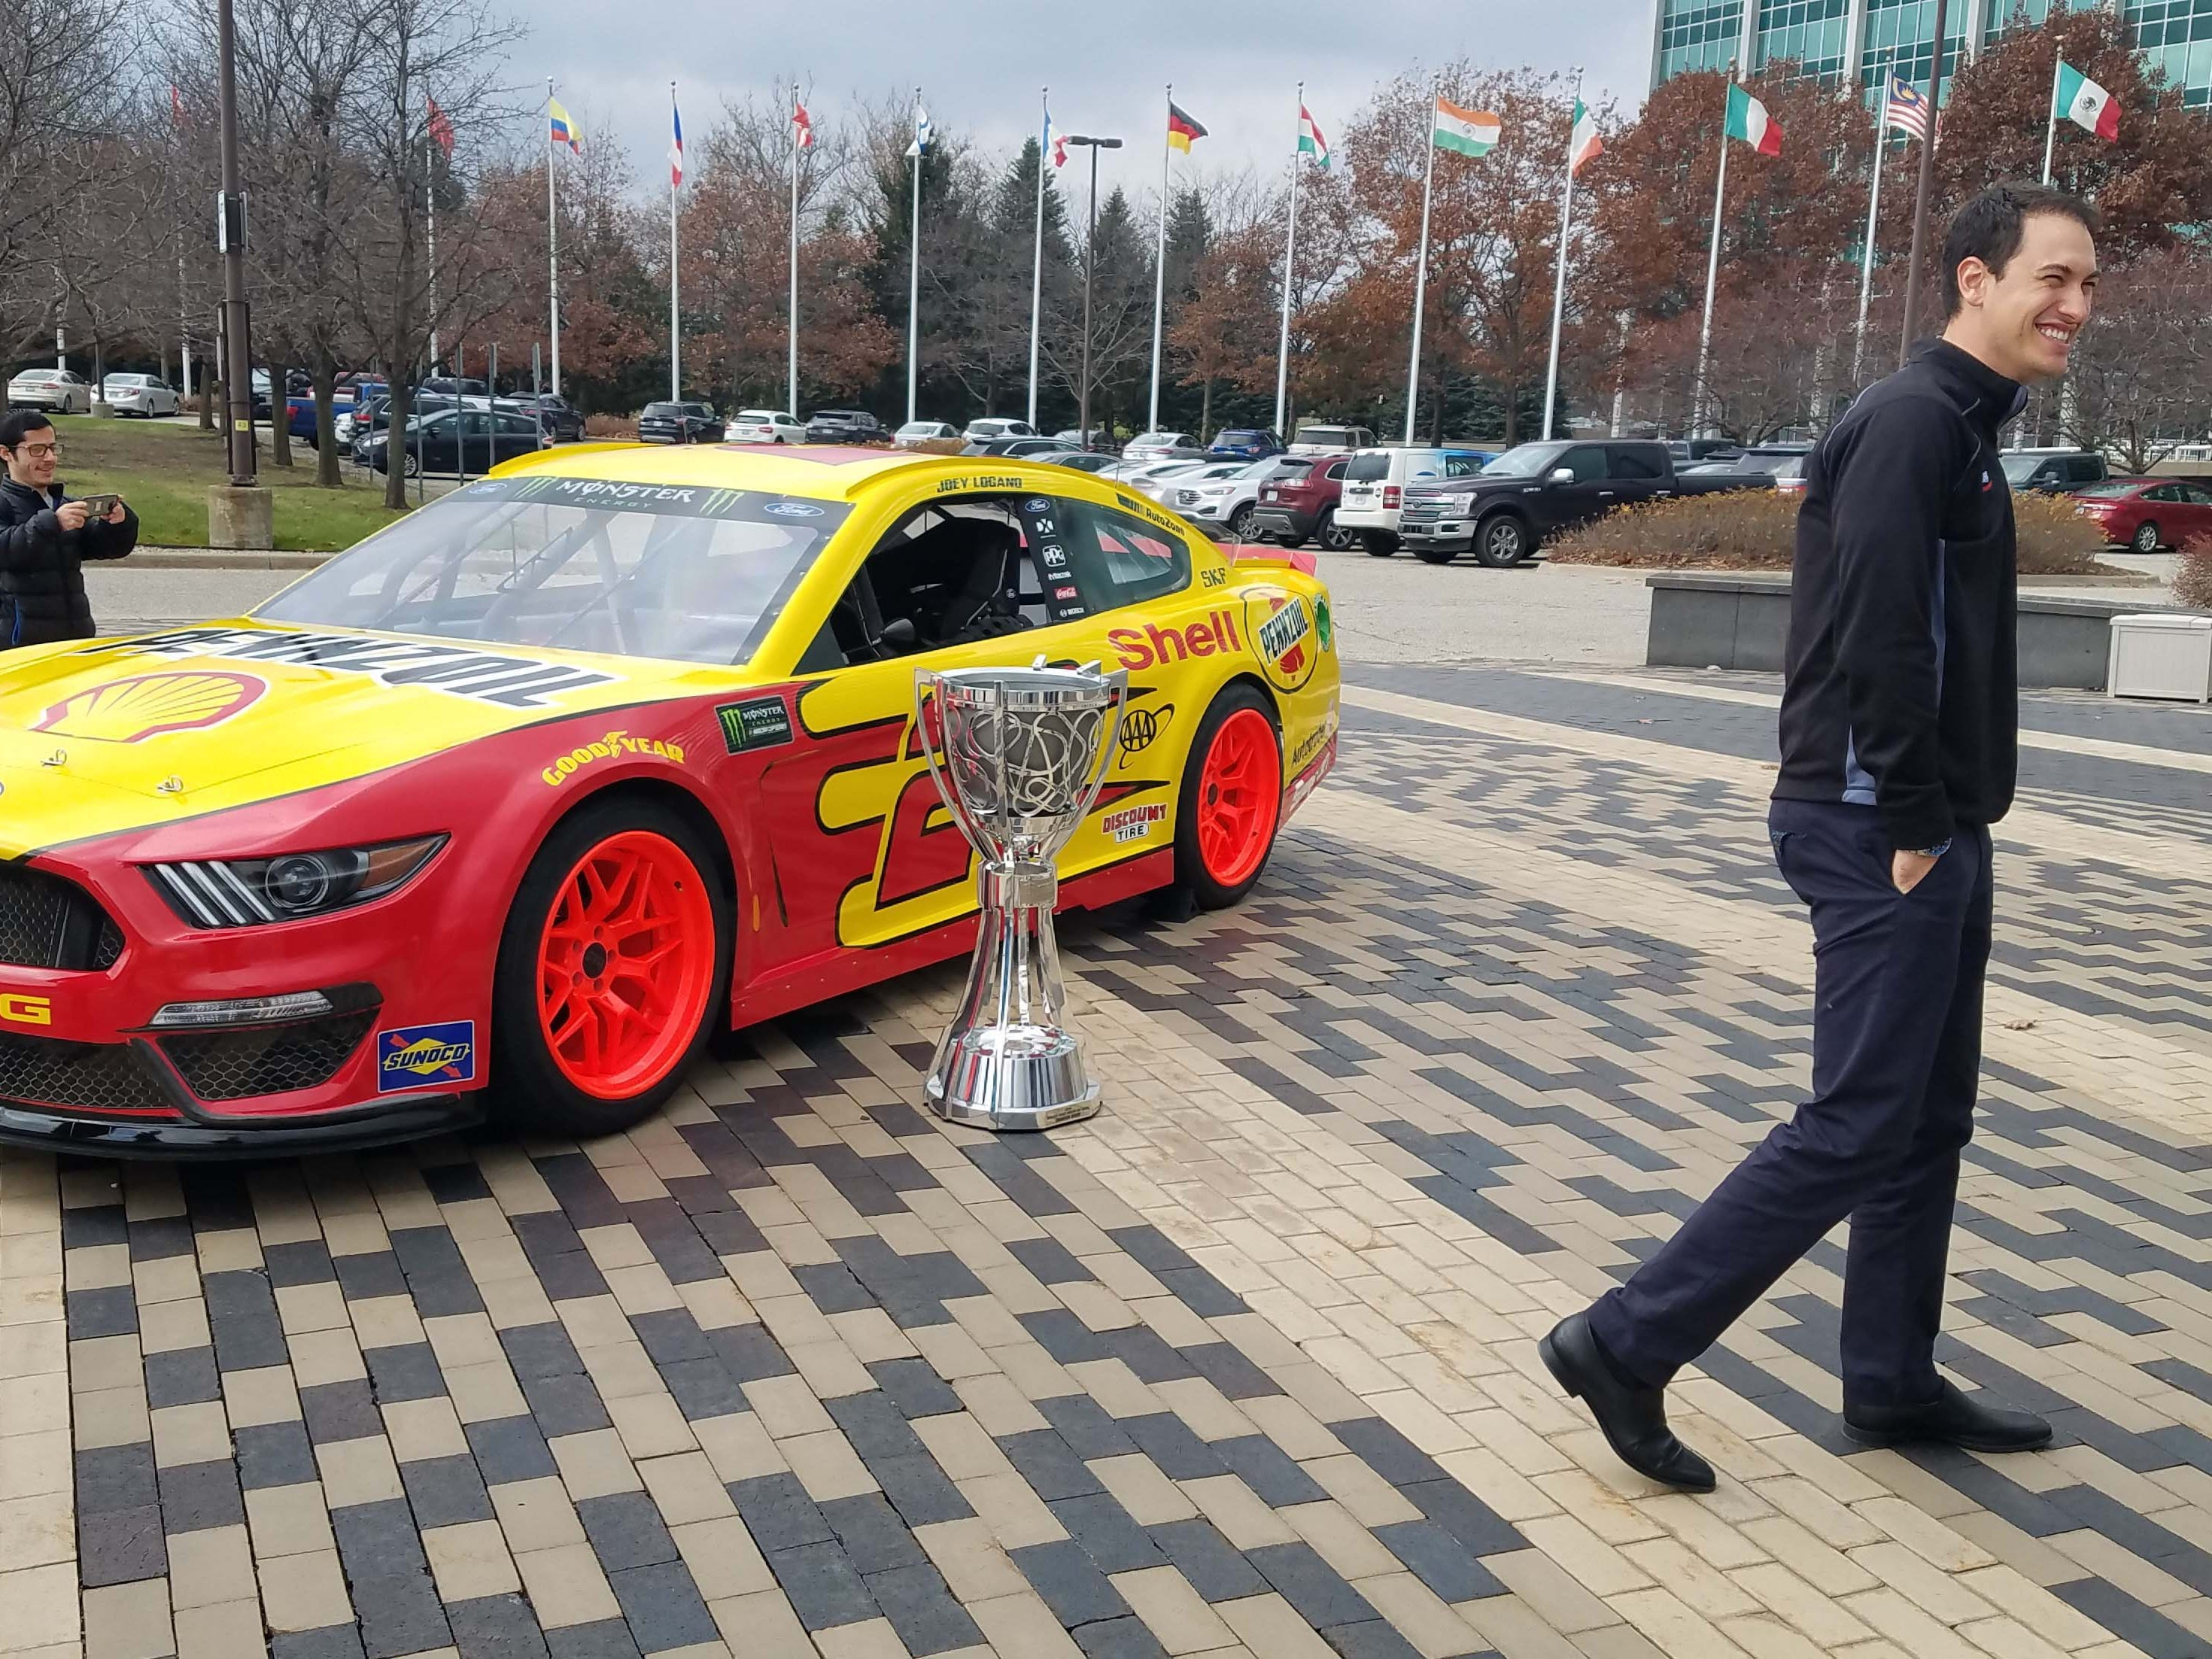 2018 NASCAR champ Joey Logano enjoys his victory gift - a NASCAR Ford Mustang drifter - in front of Ford HQ. Logano will compete for Team Penske in a new NASCAR Mustang at Daytona this month.